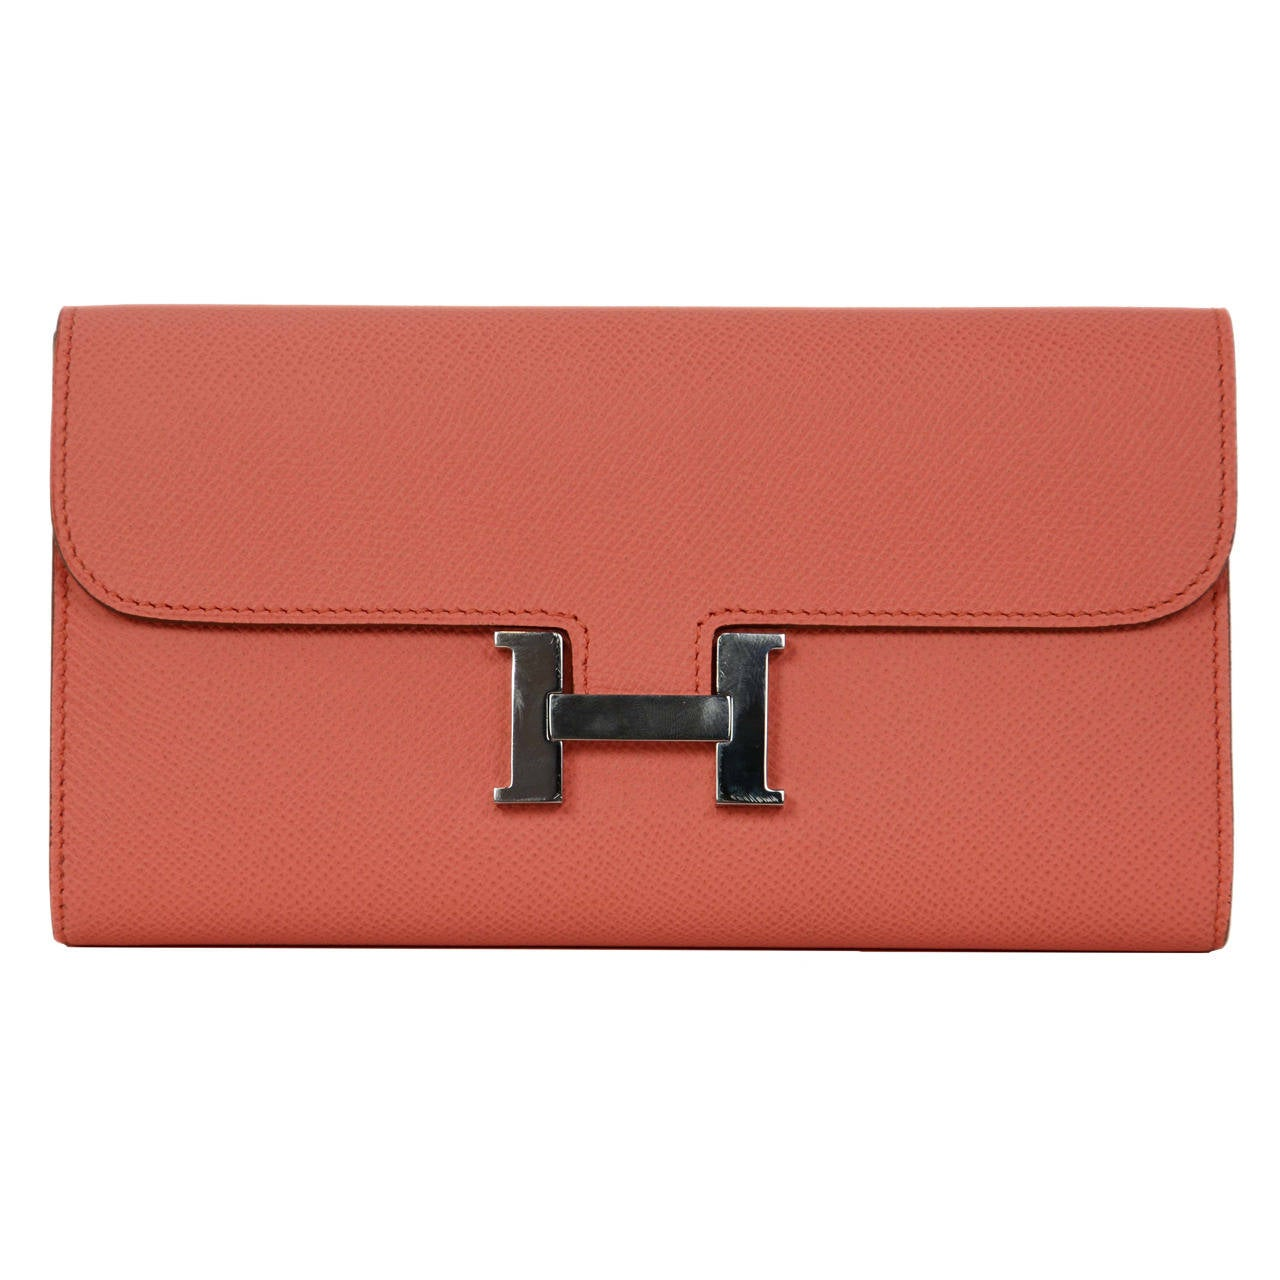 HERMES 2013 Flamingo Peach Epsom Long H Constance Wallet/Clutch PHW 1